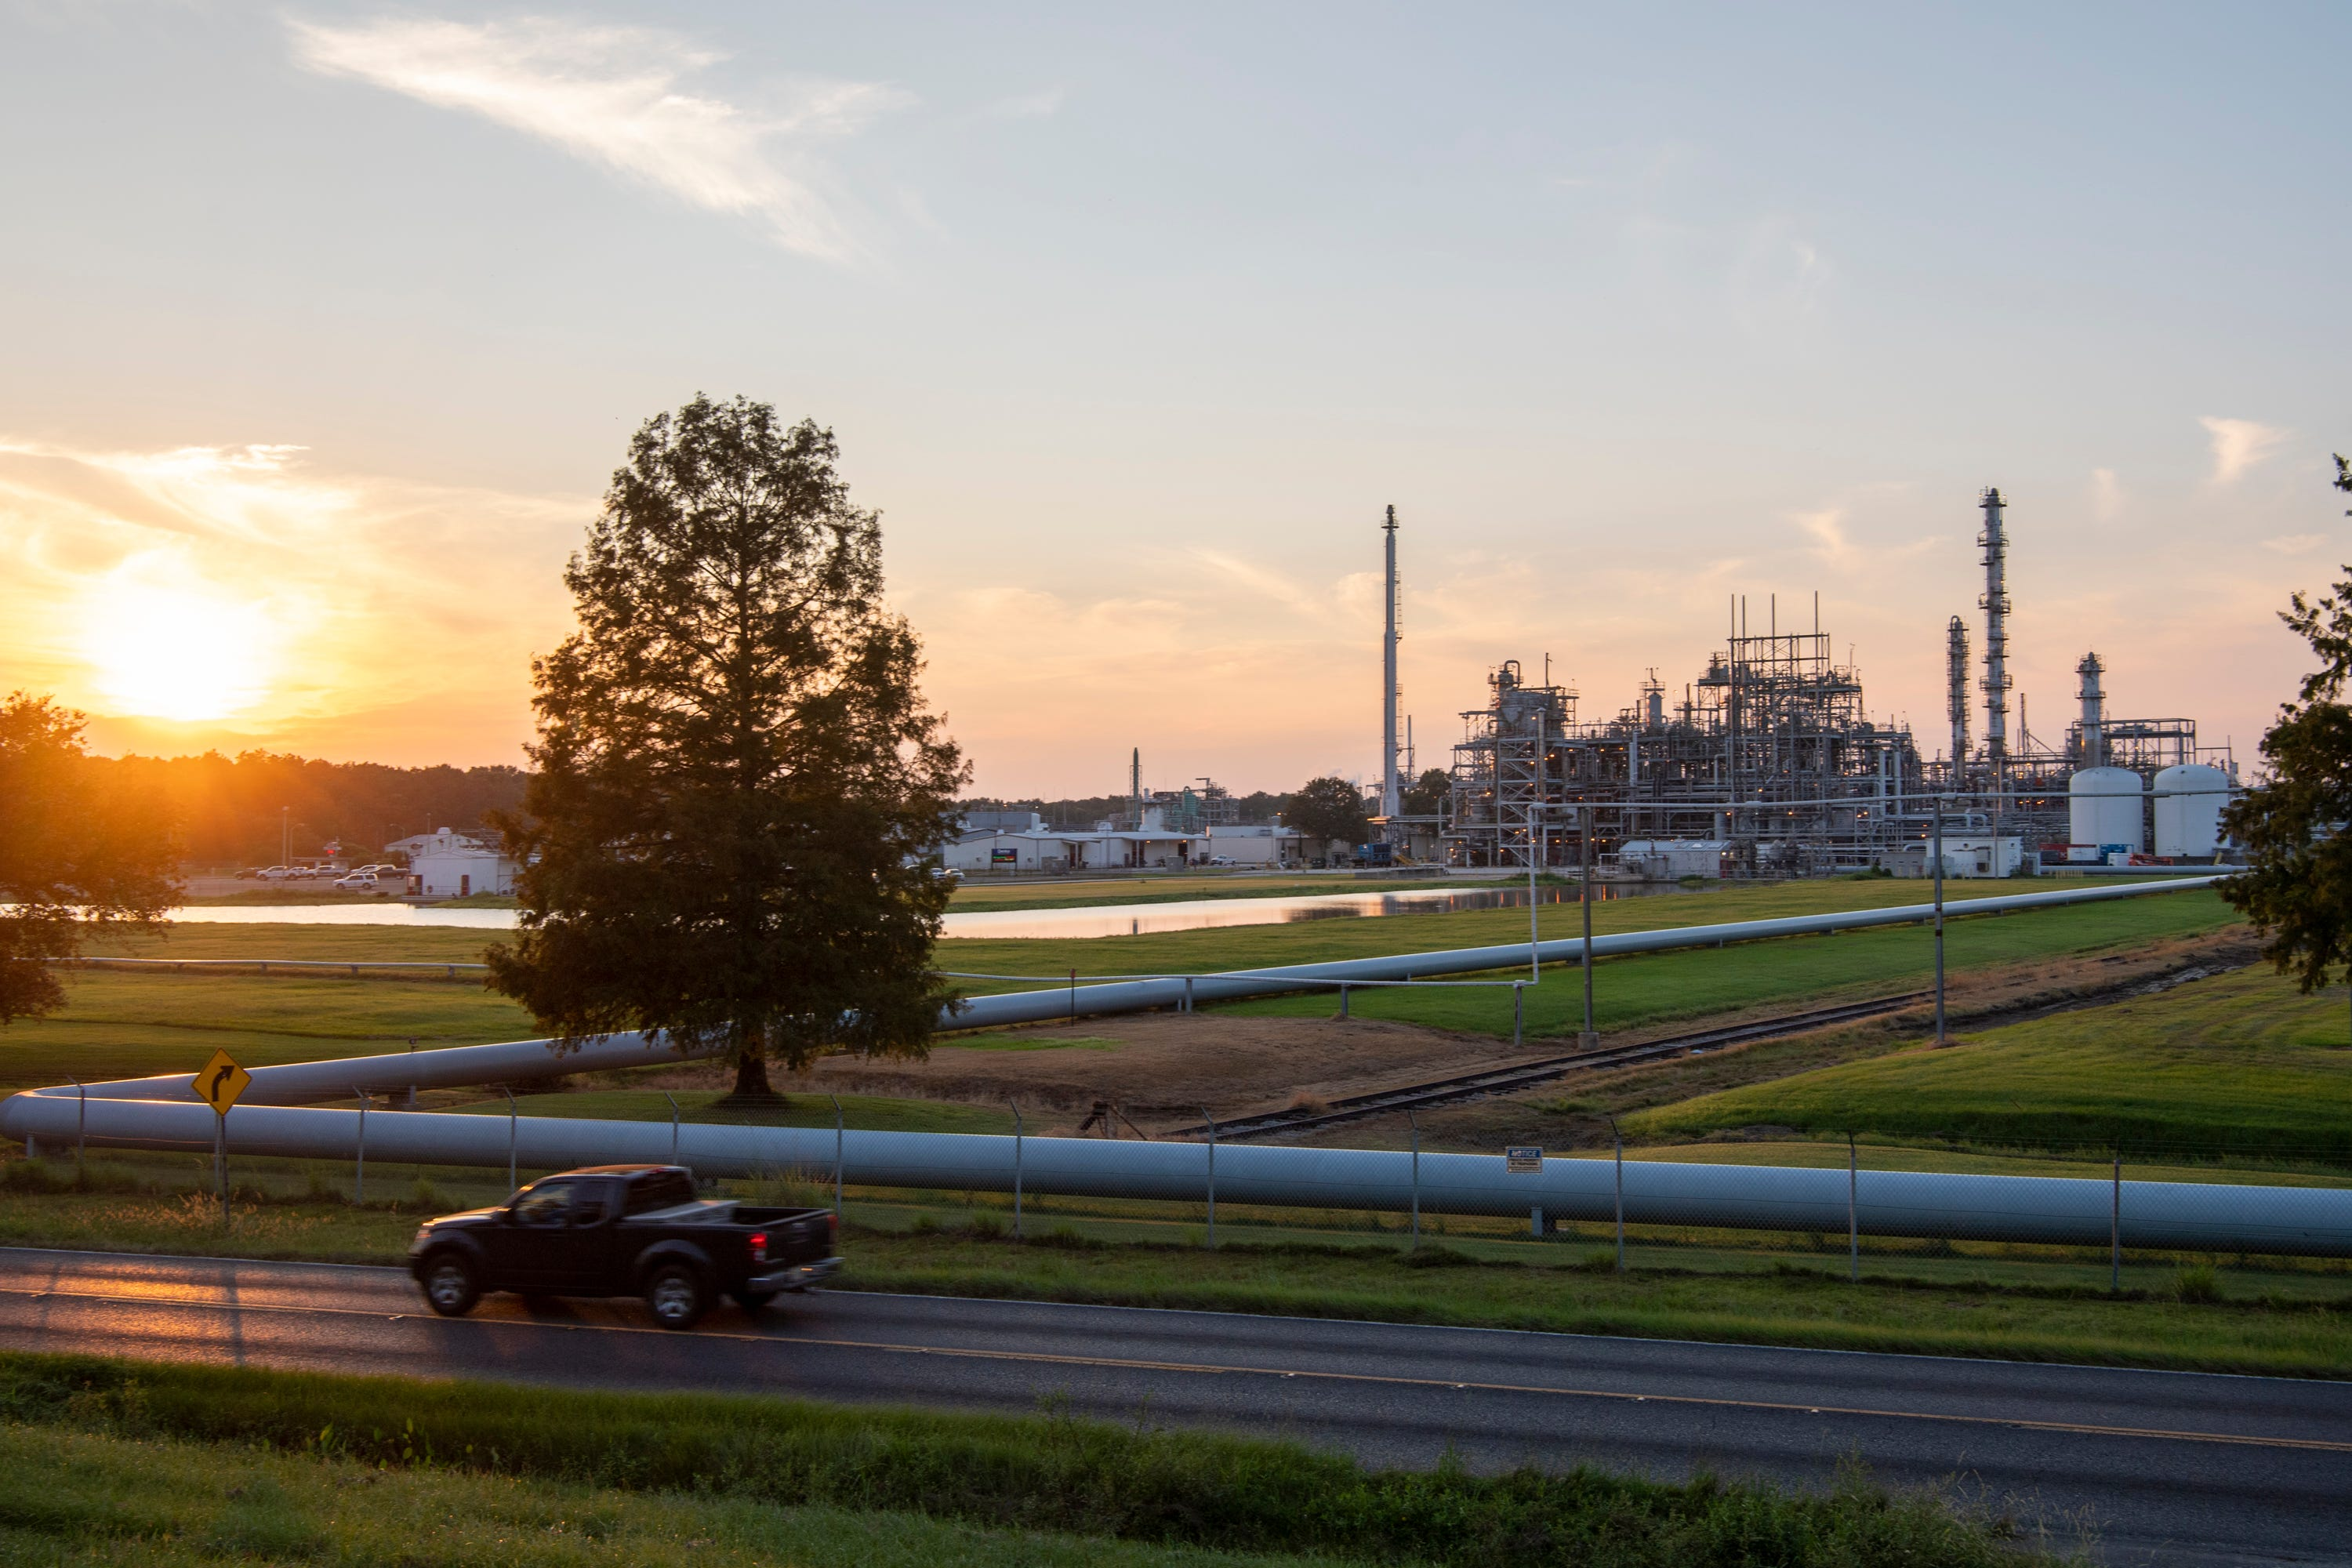 The Denka Performance Elastomer neoprene plant sits just a few hundred yards from the residential streets of Reserve, La.